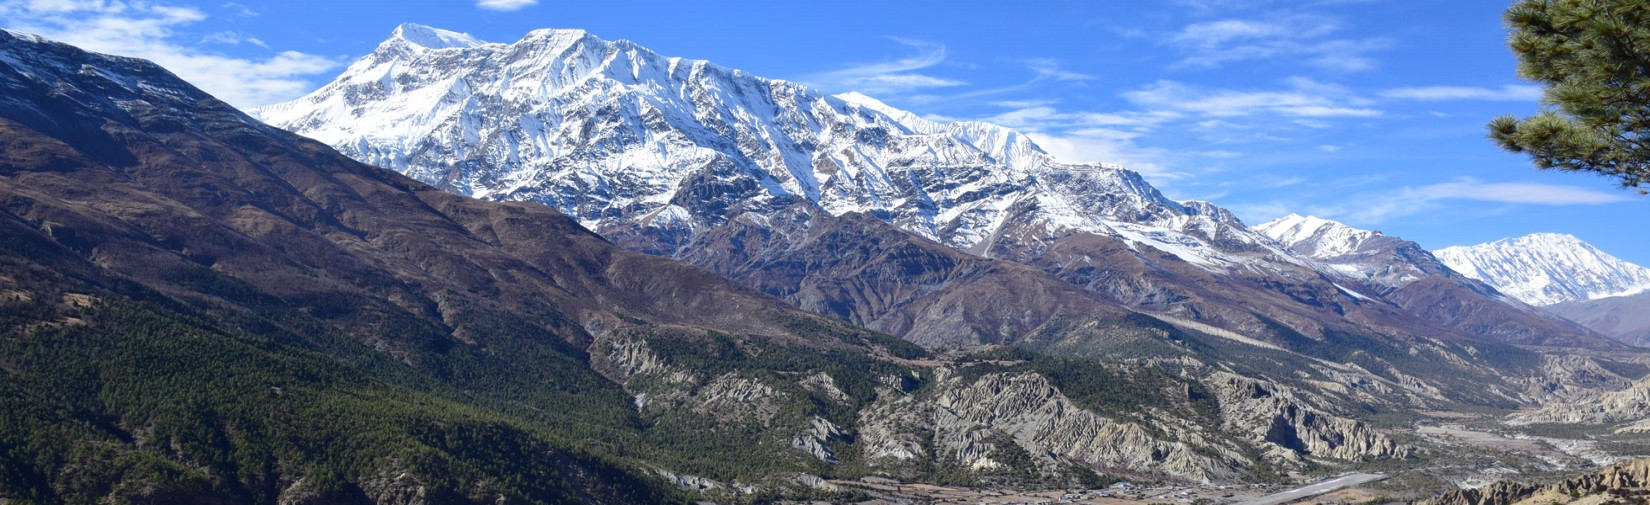 Annapurna-III-with-Ngyeshyang-valley-and-hunde